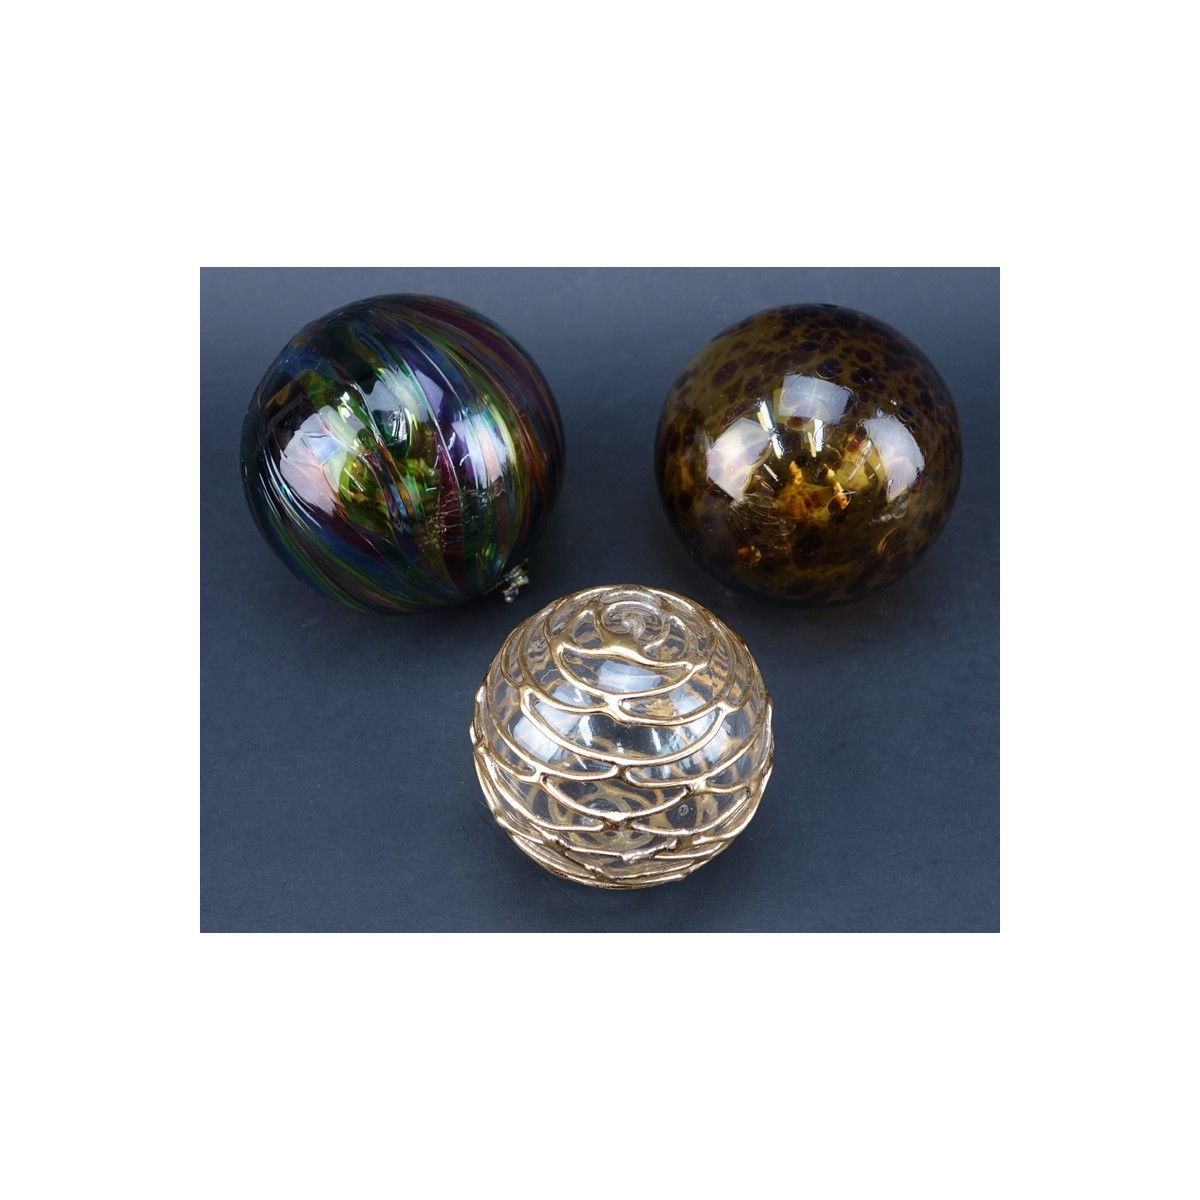 Group of Nine (9): Six Vintage Glass Paperweights along with Three Art Glass Spheres. Label attache